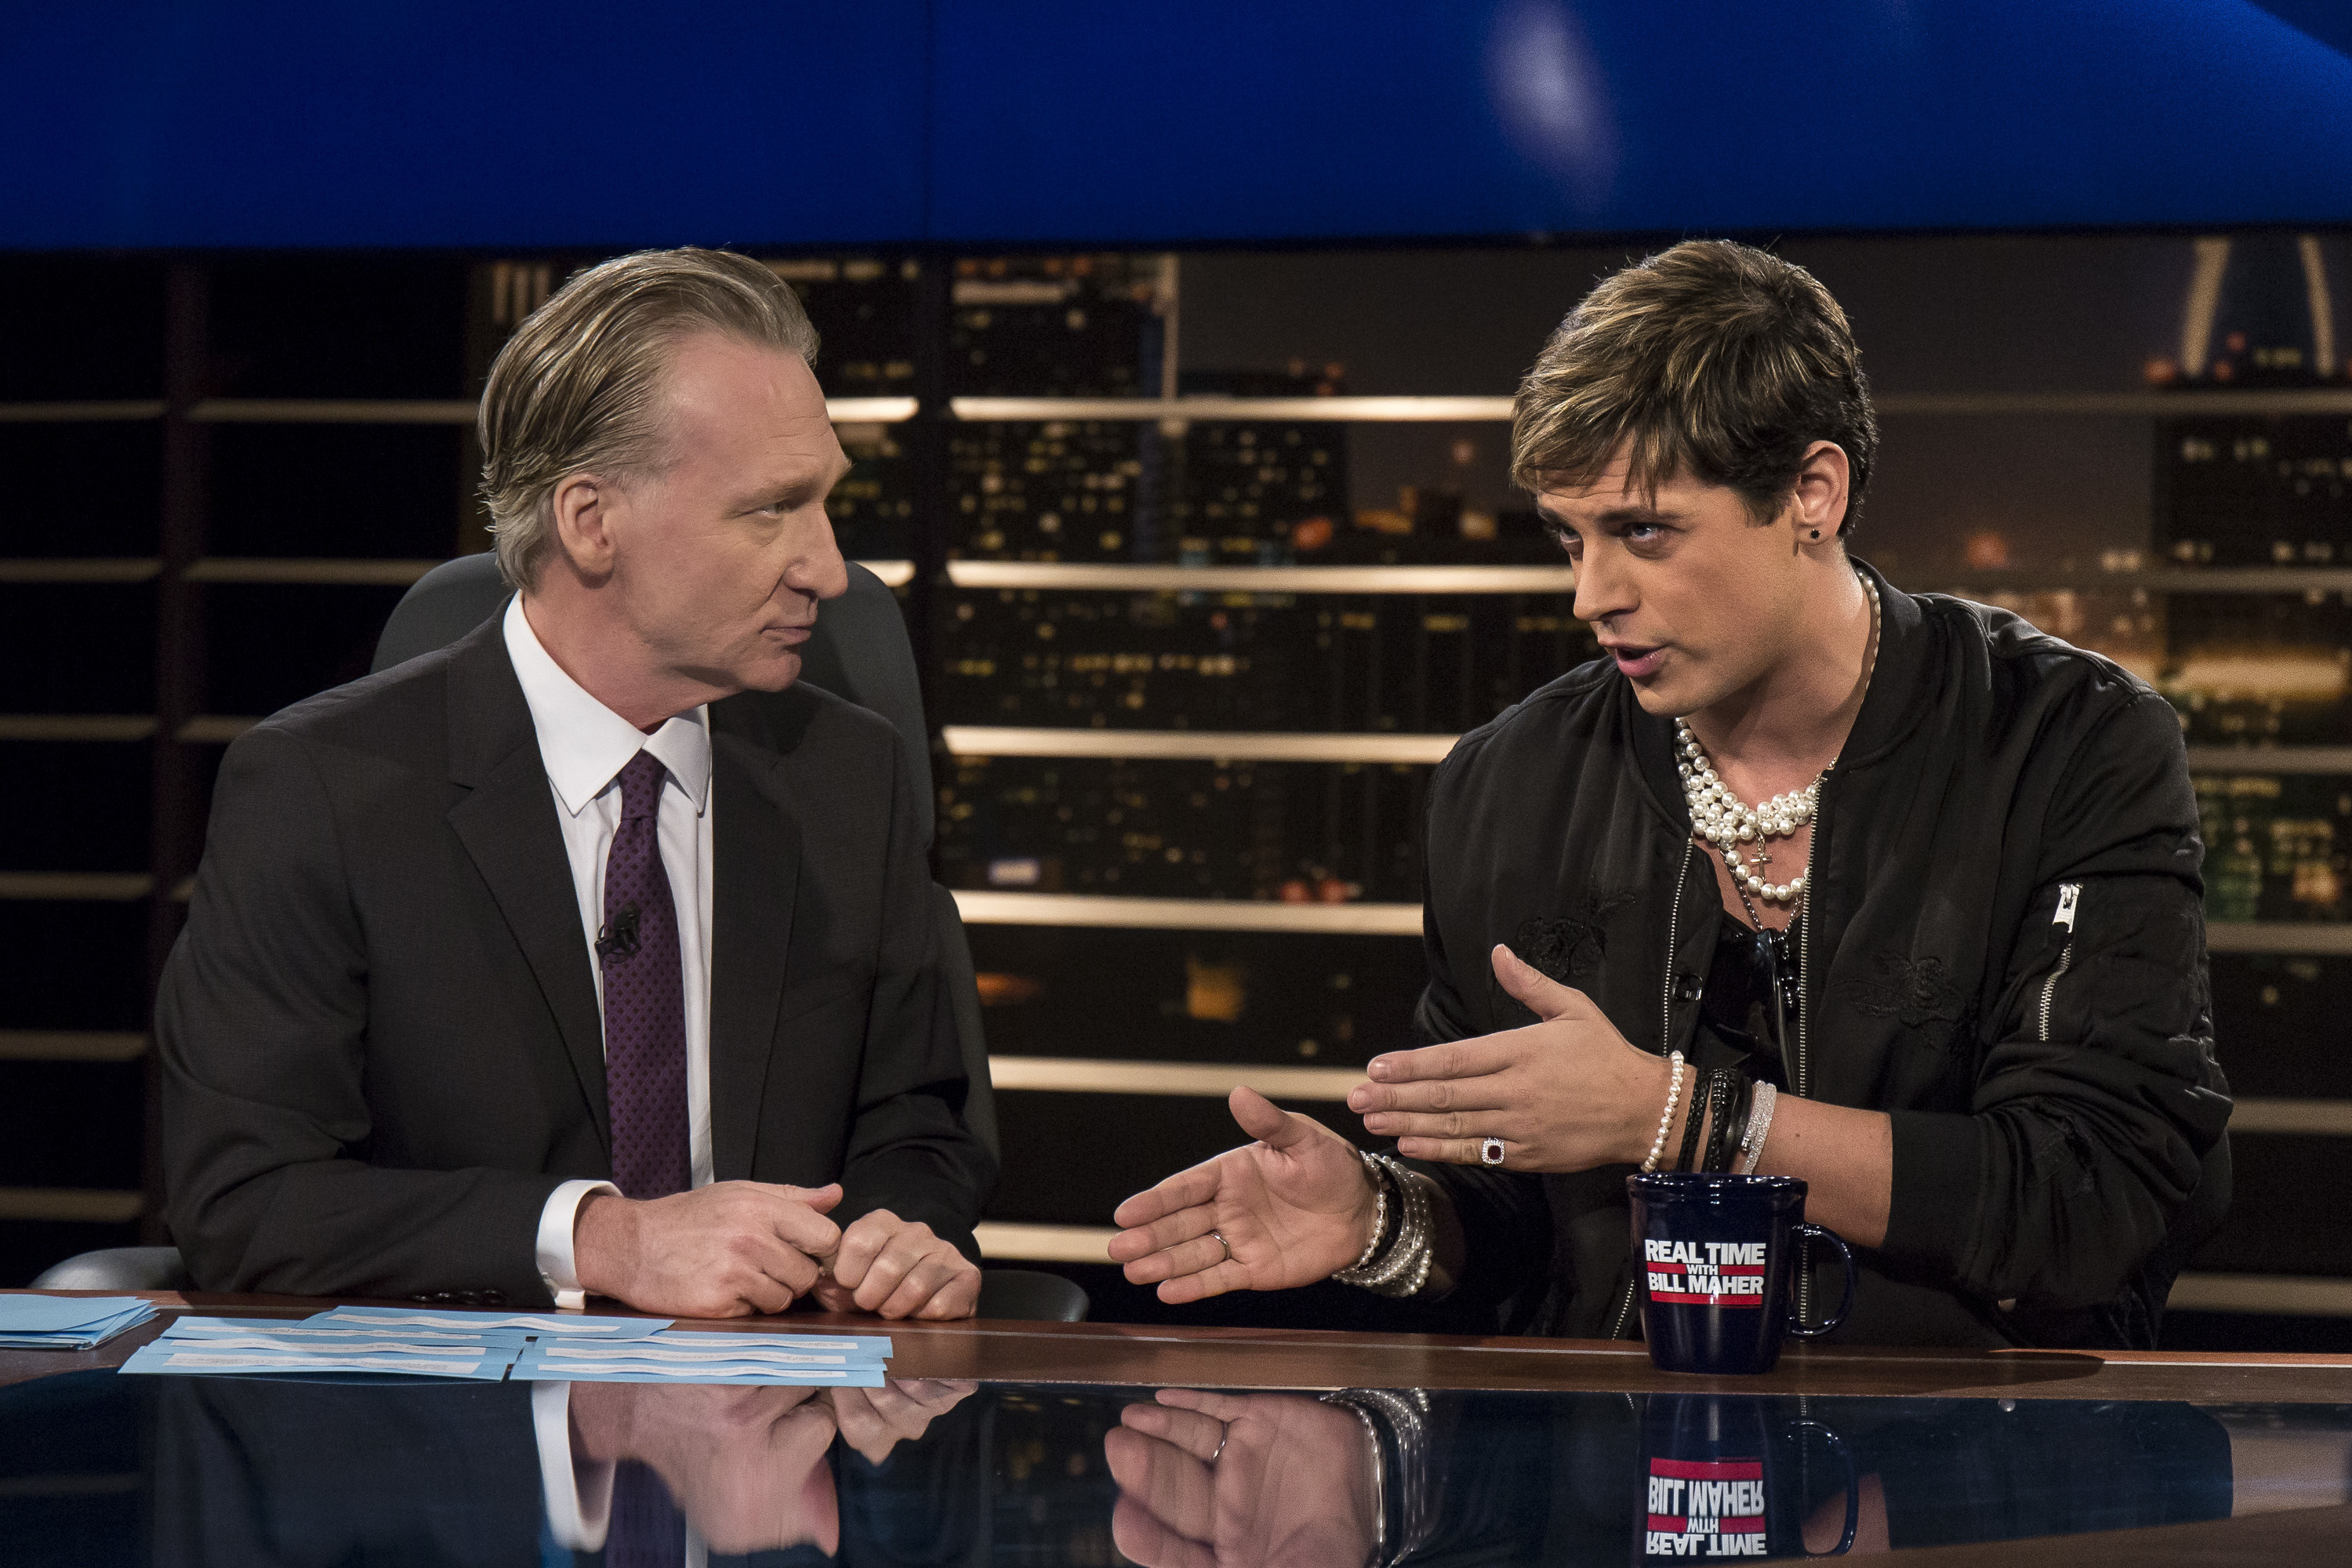 CPAC's Organizer Explains Why He Invited (and Disinvited) Milo Yiannopoulos